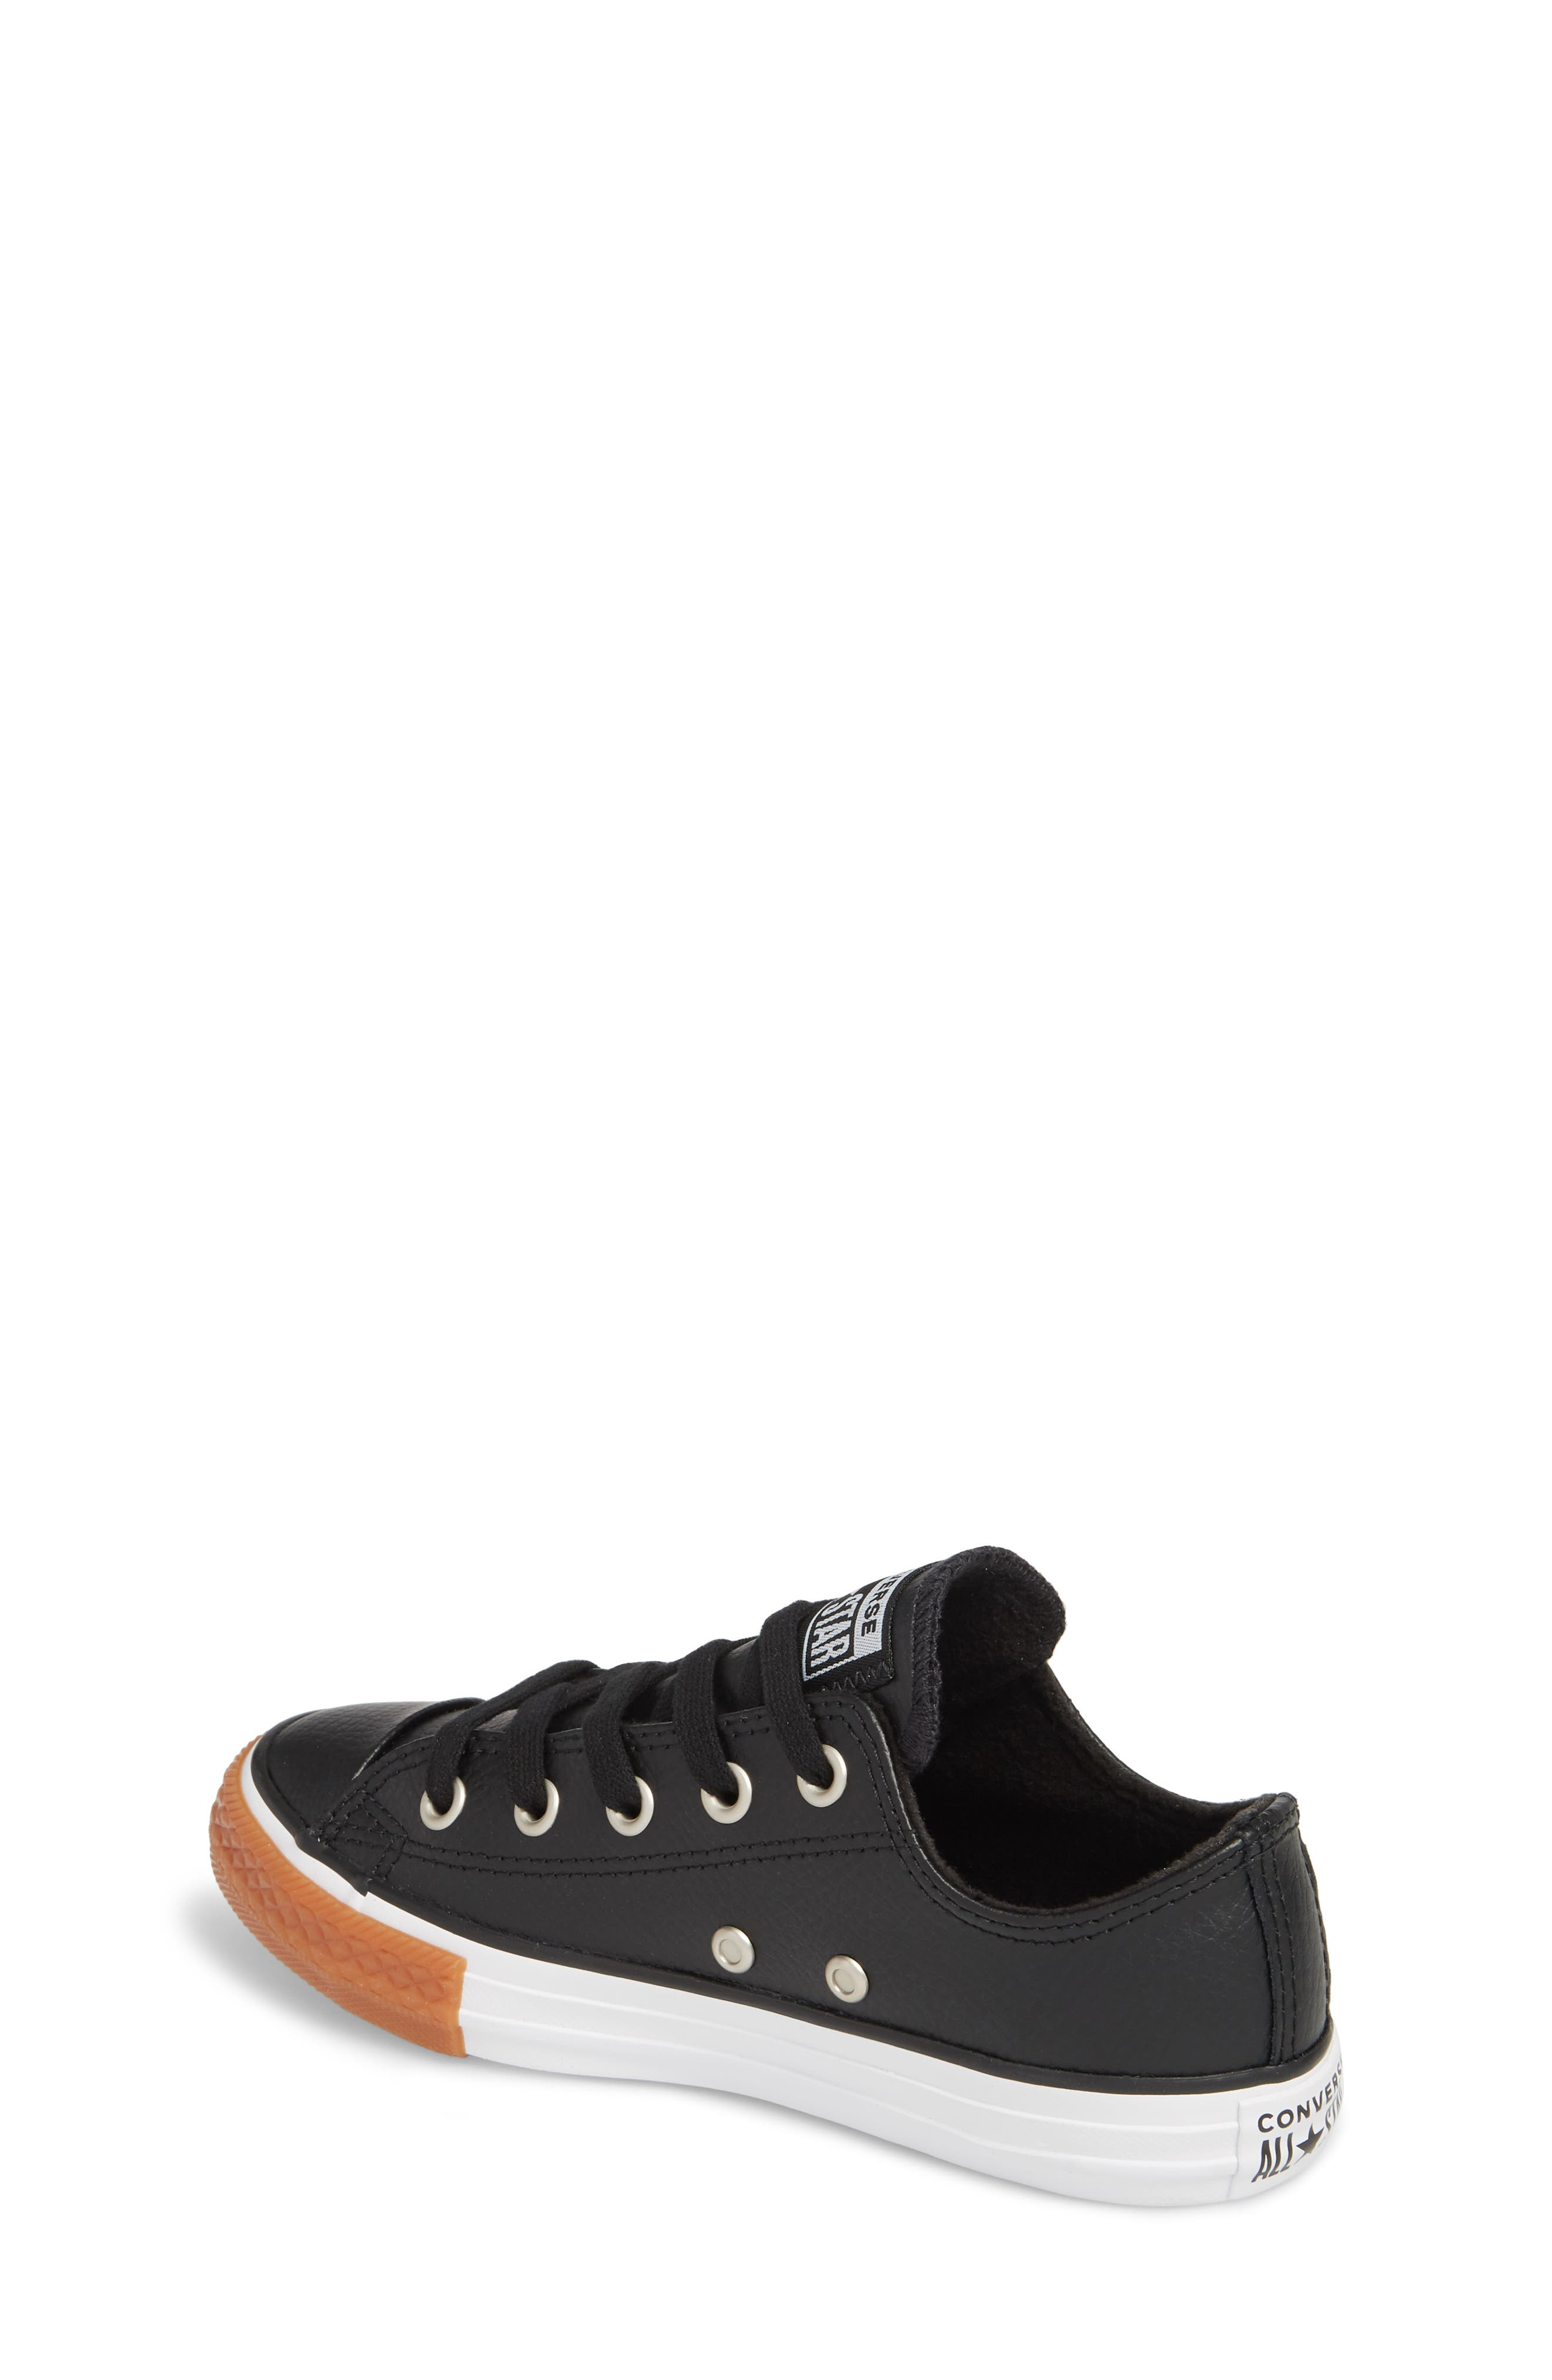 Chuck Taylor<sup>®</sup> All Star<sup>®</sup> Ox Faux Leather Sneaker,                             Alternate thumbnail 2, color,                             BLACK